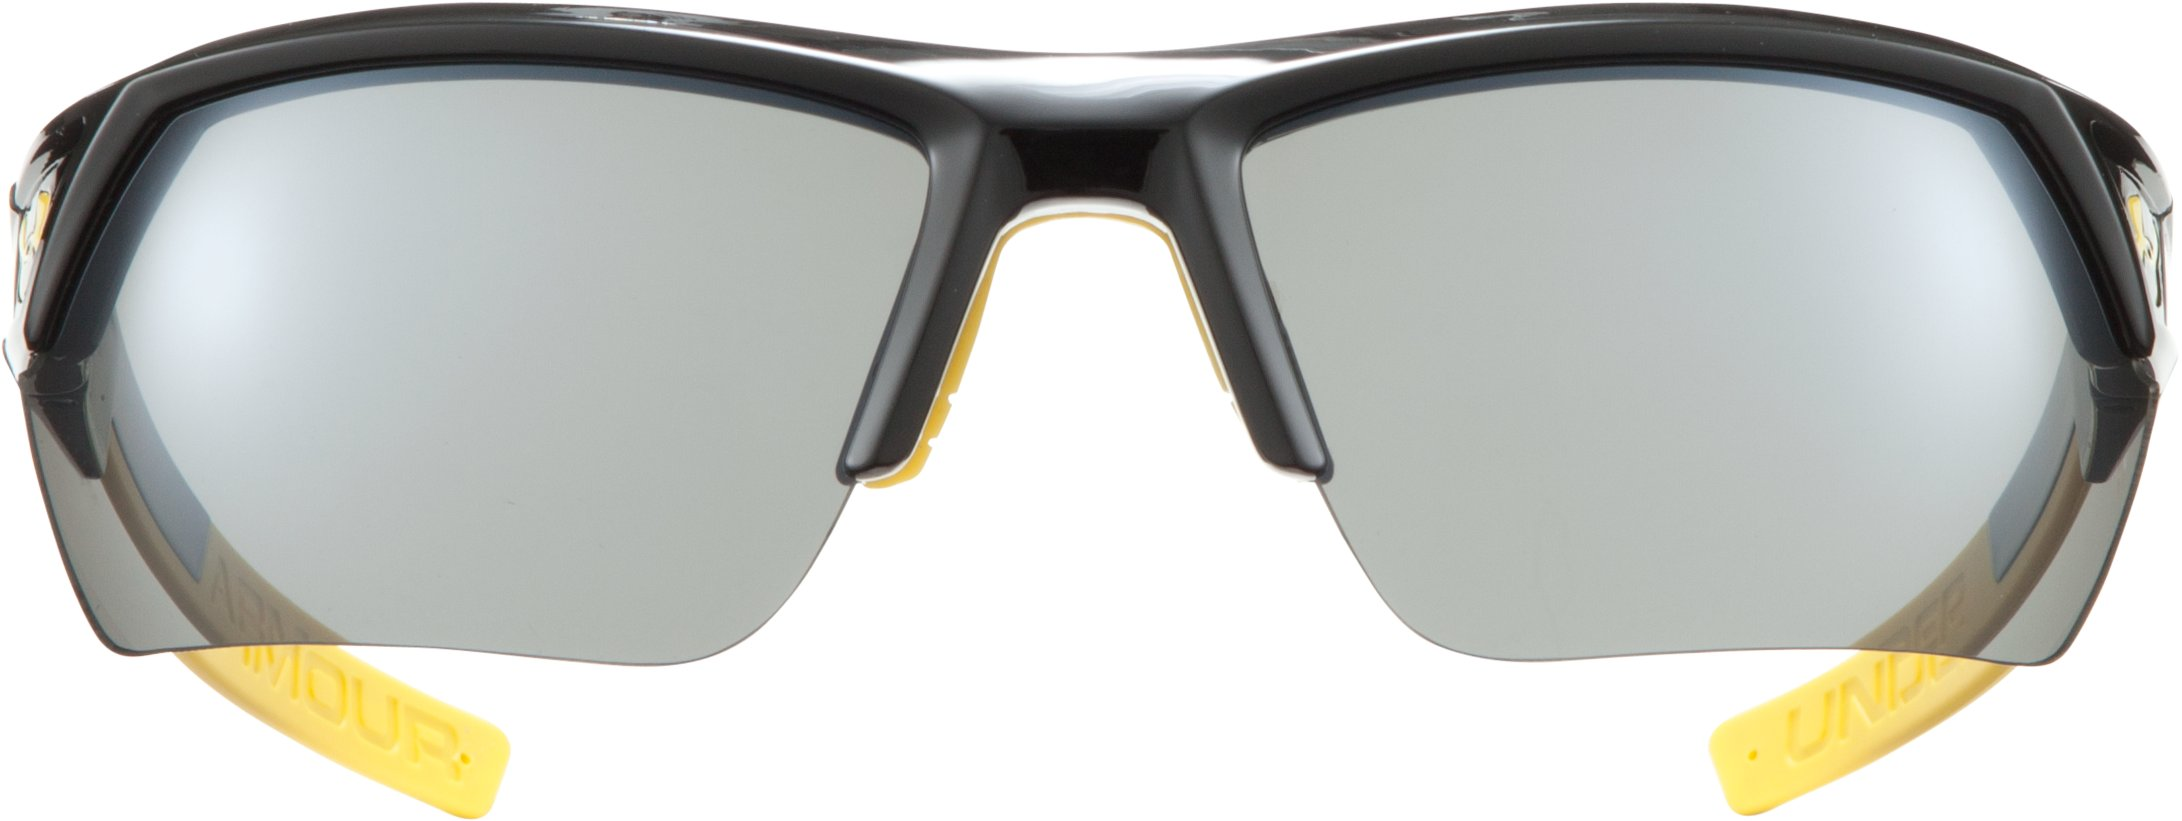 UA Igniter 2.0 Sunglasses, Shiny Black